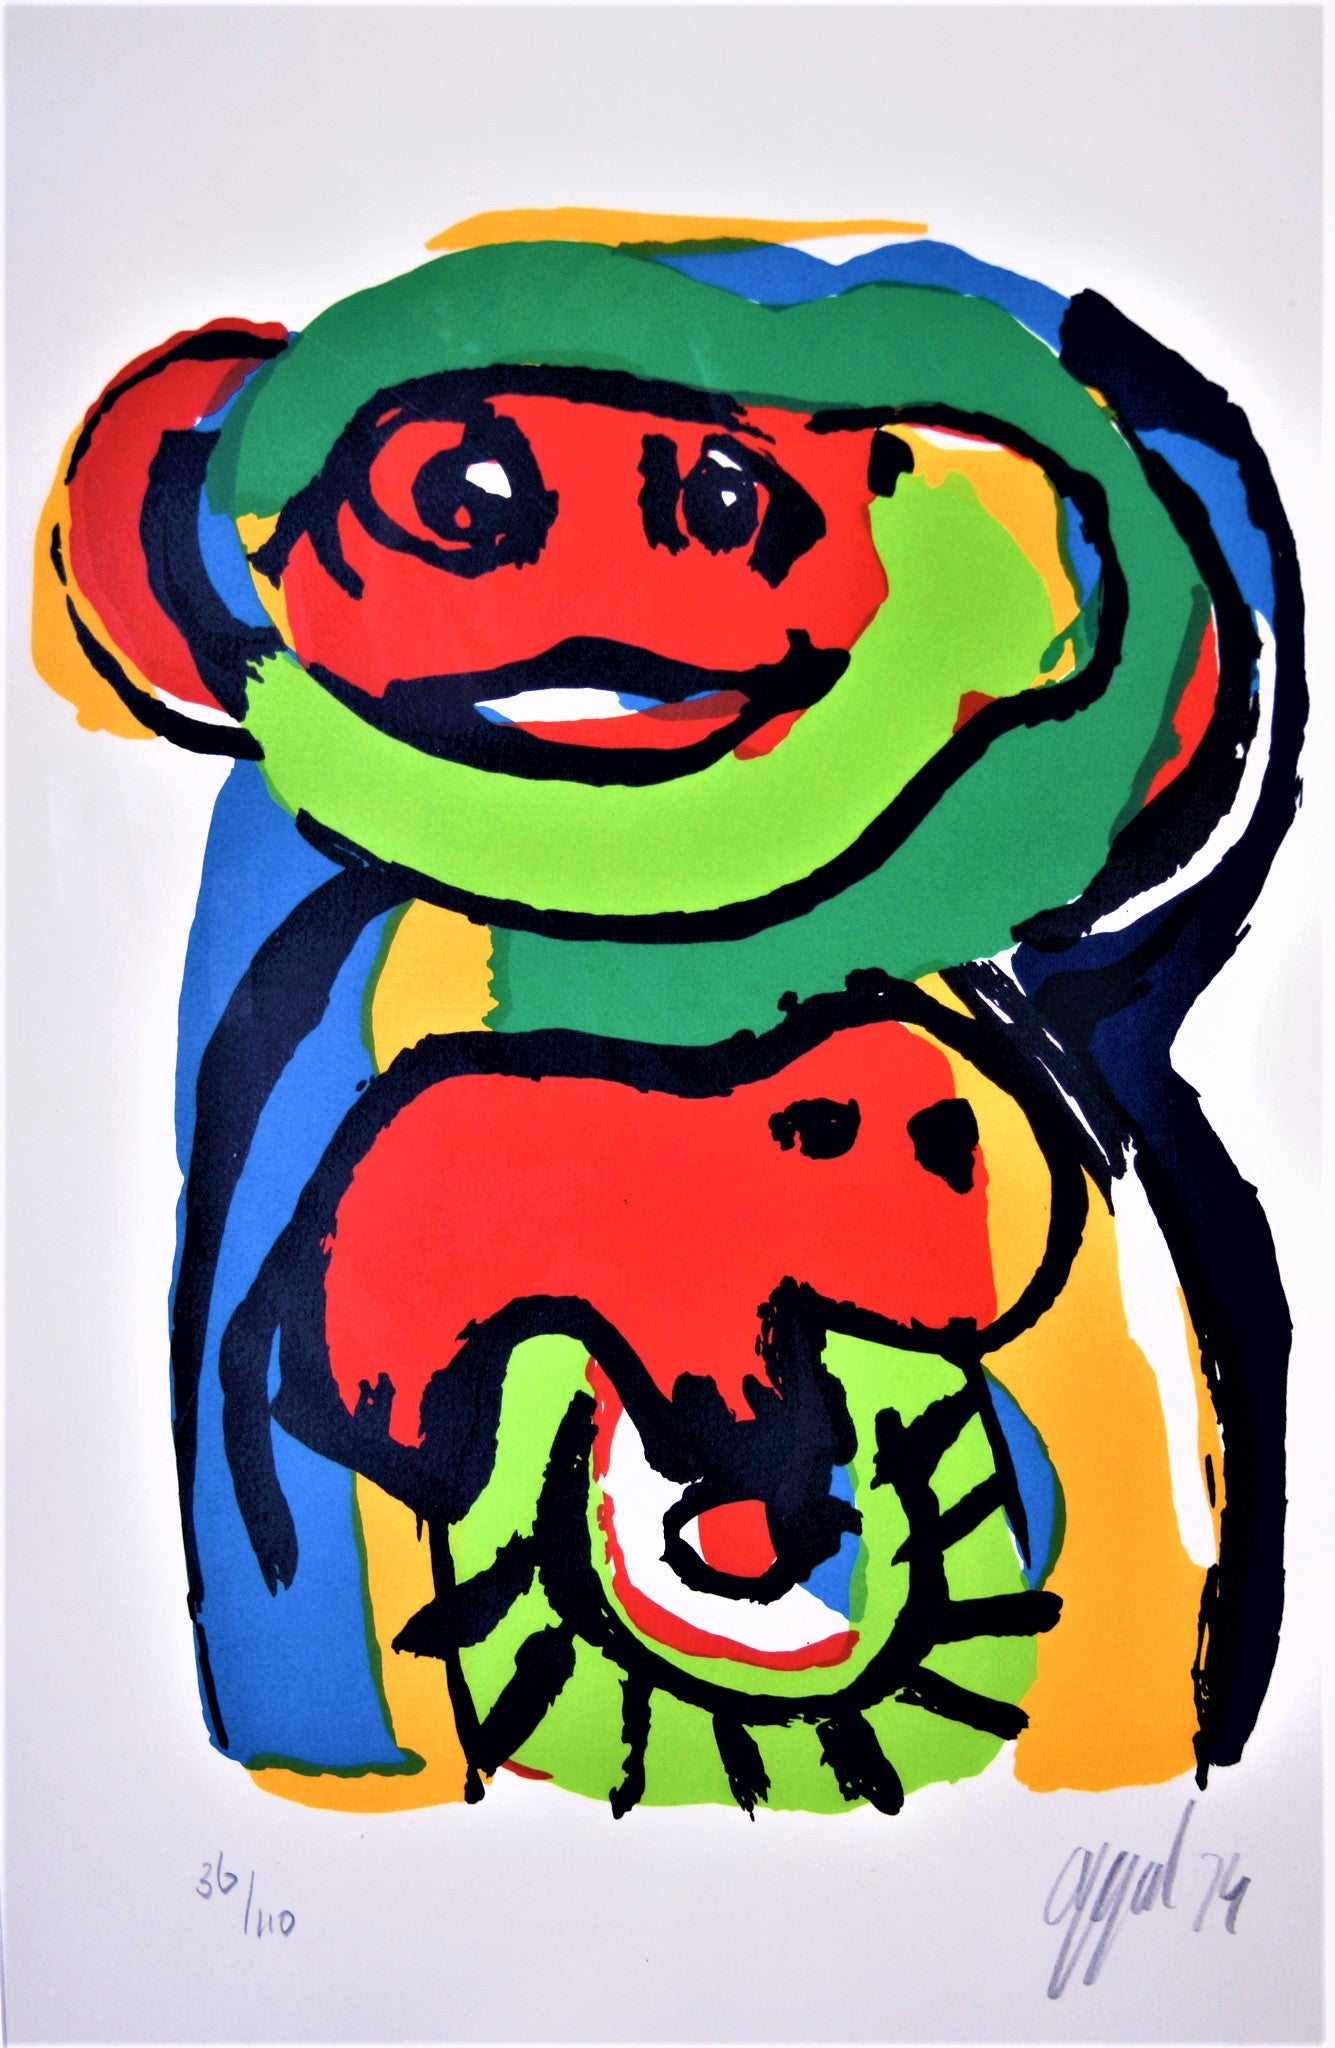 Tweedehands design Karel Appel, Silkscreen hand signed edition 36/110